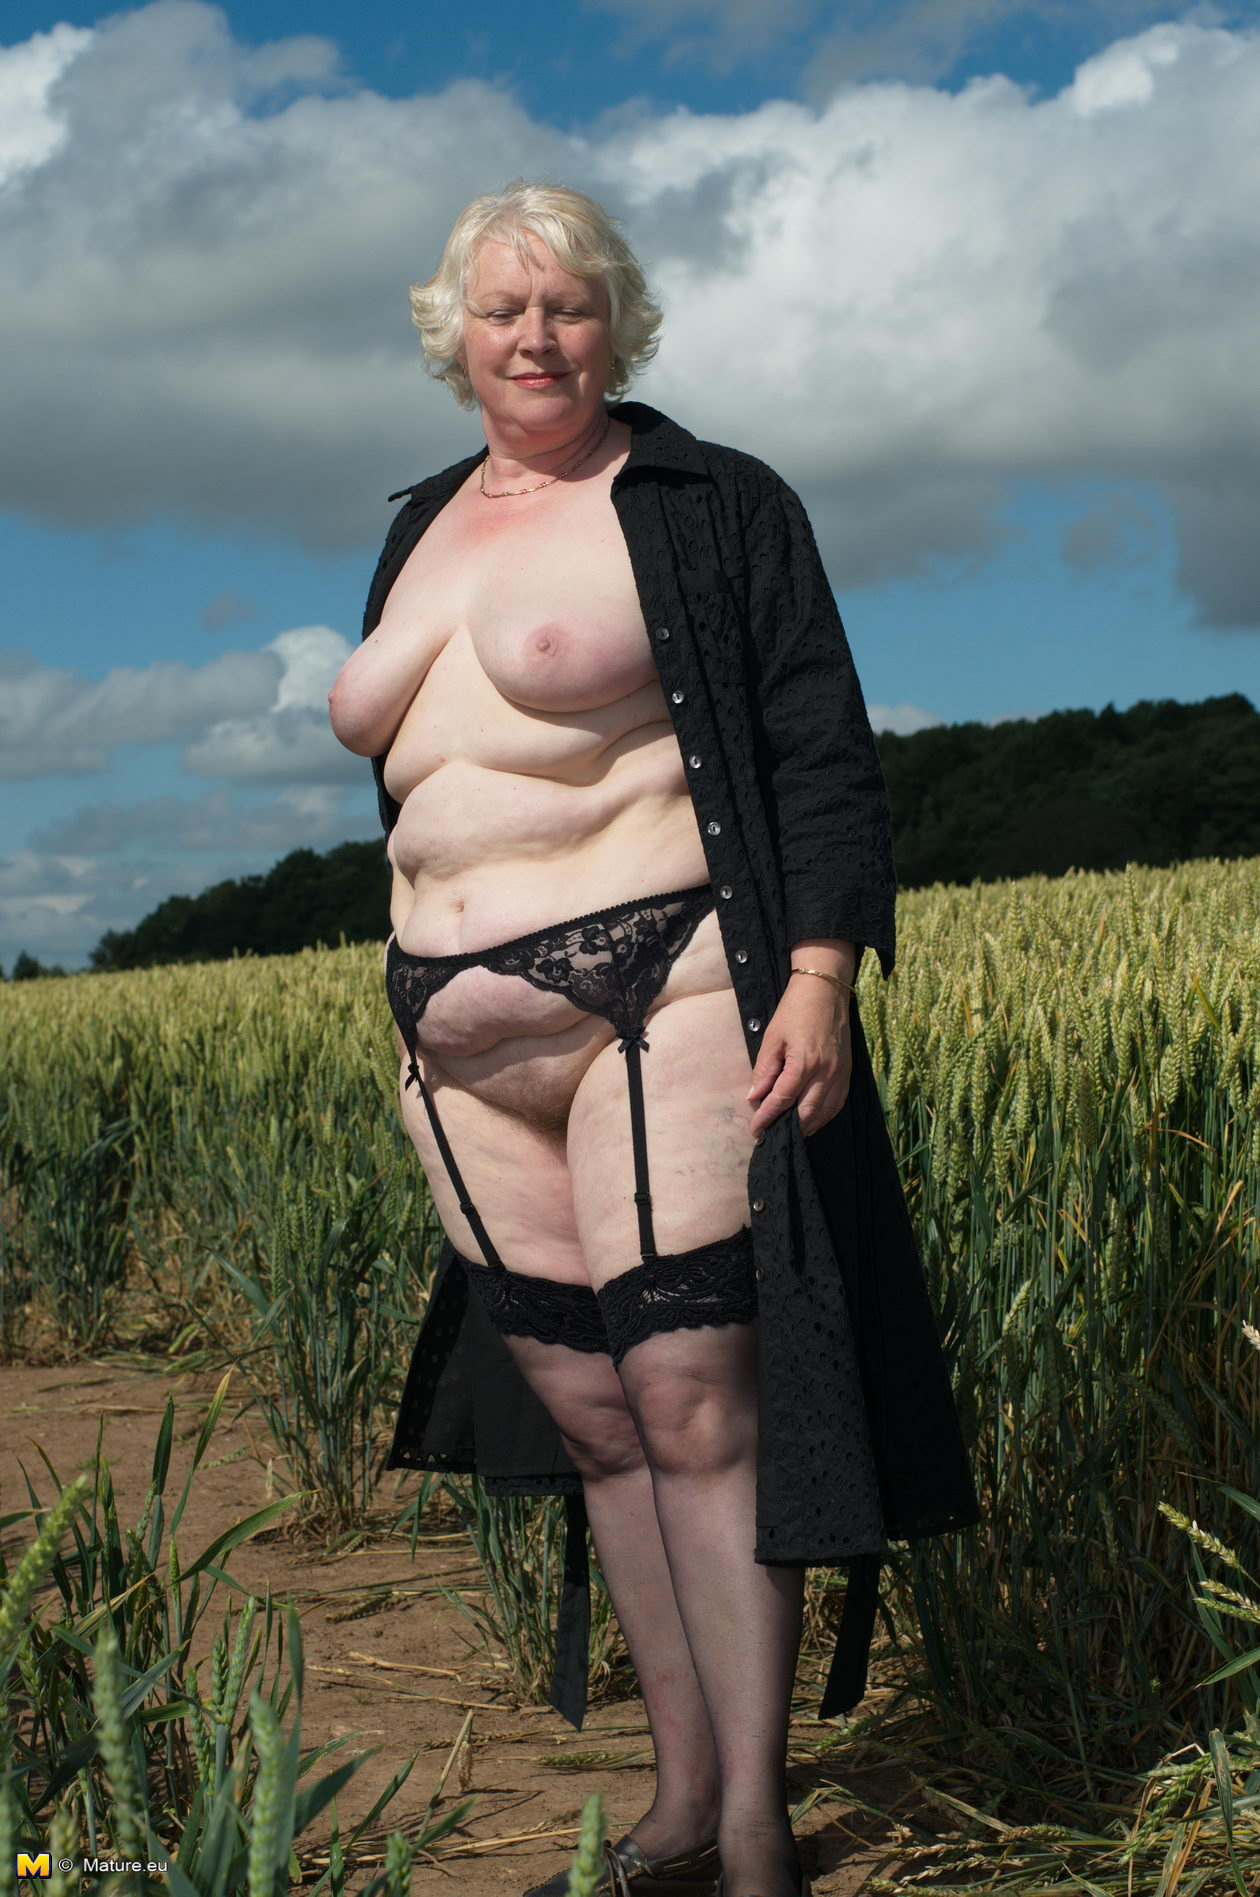 Older Lady In Nature Large Stocking Porn Outdoor Cornellia granny outdoor naked mature - softcore - hot photos